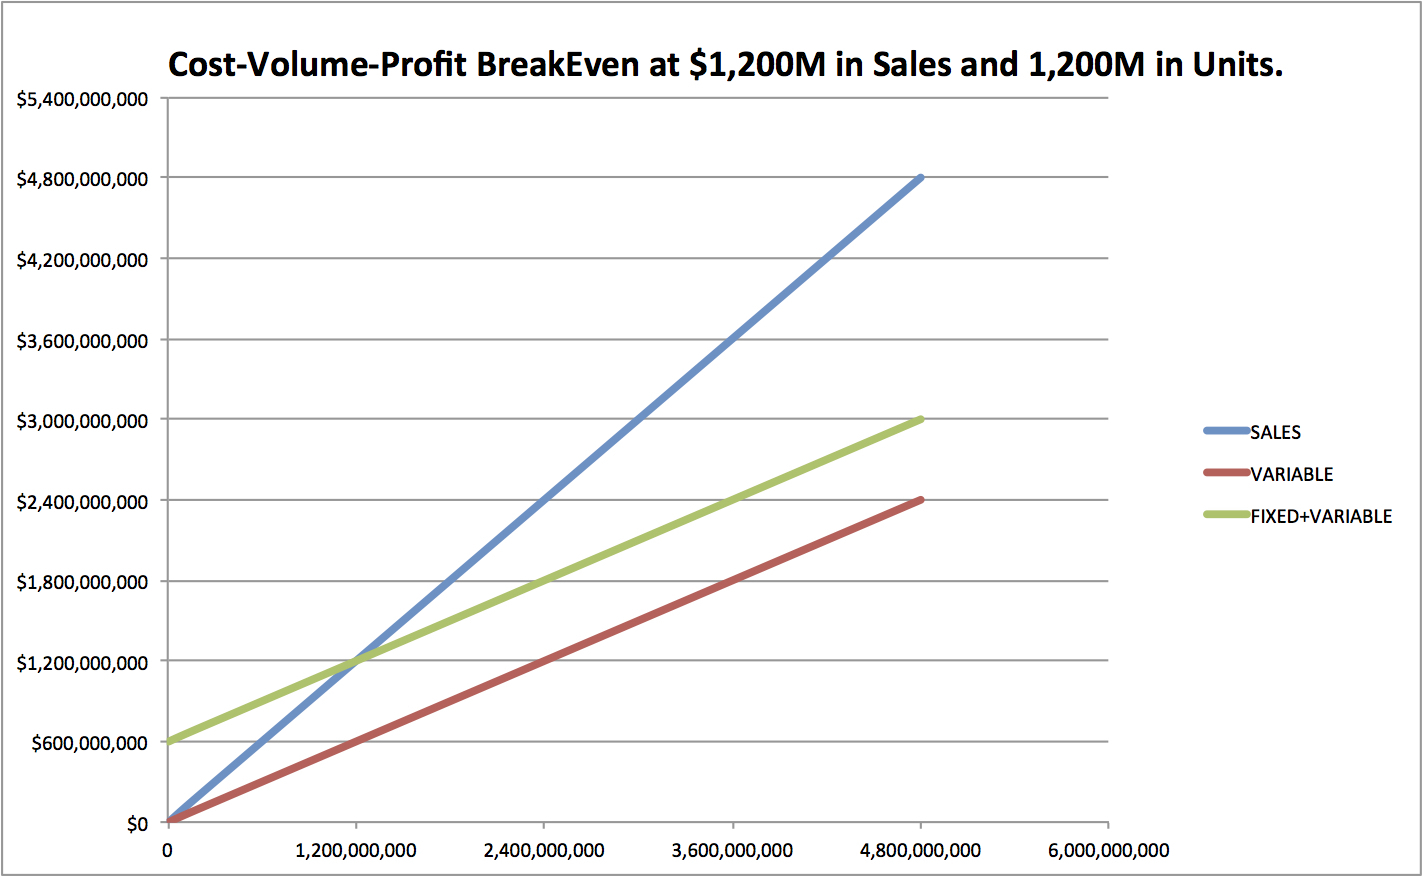 Price Volume Mix Analysis Excel Spreadsheet With How To Do Cost Volume Profit Analysis: 9 Steps With Pictures